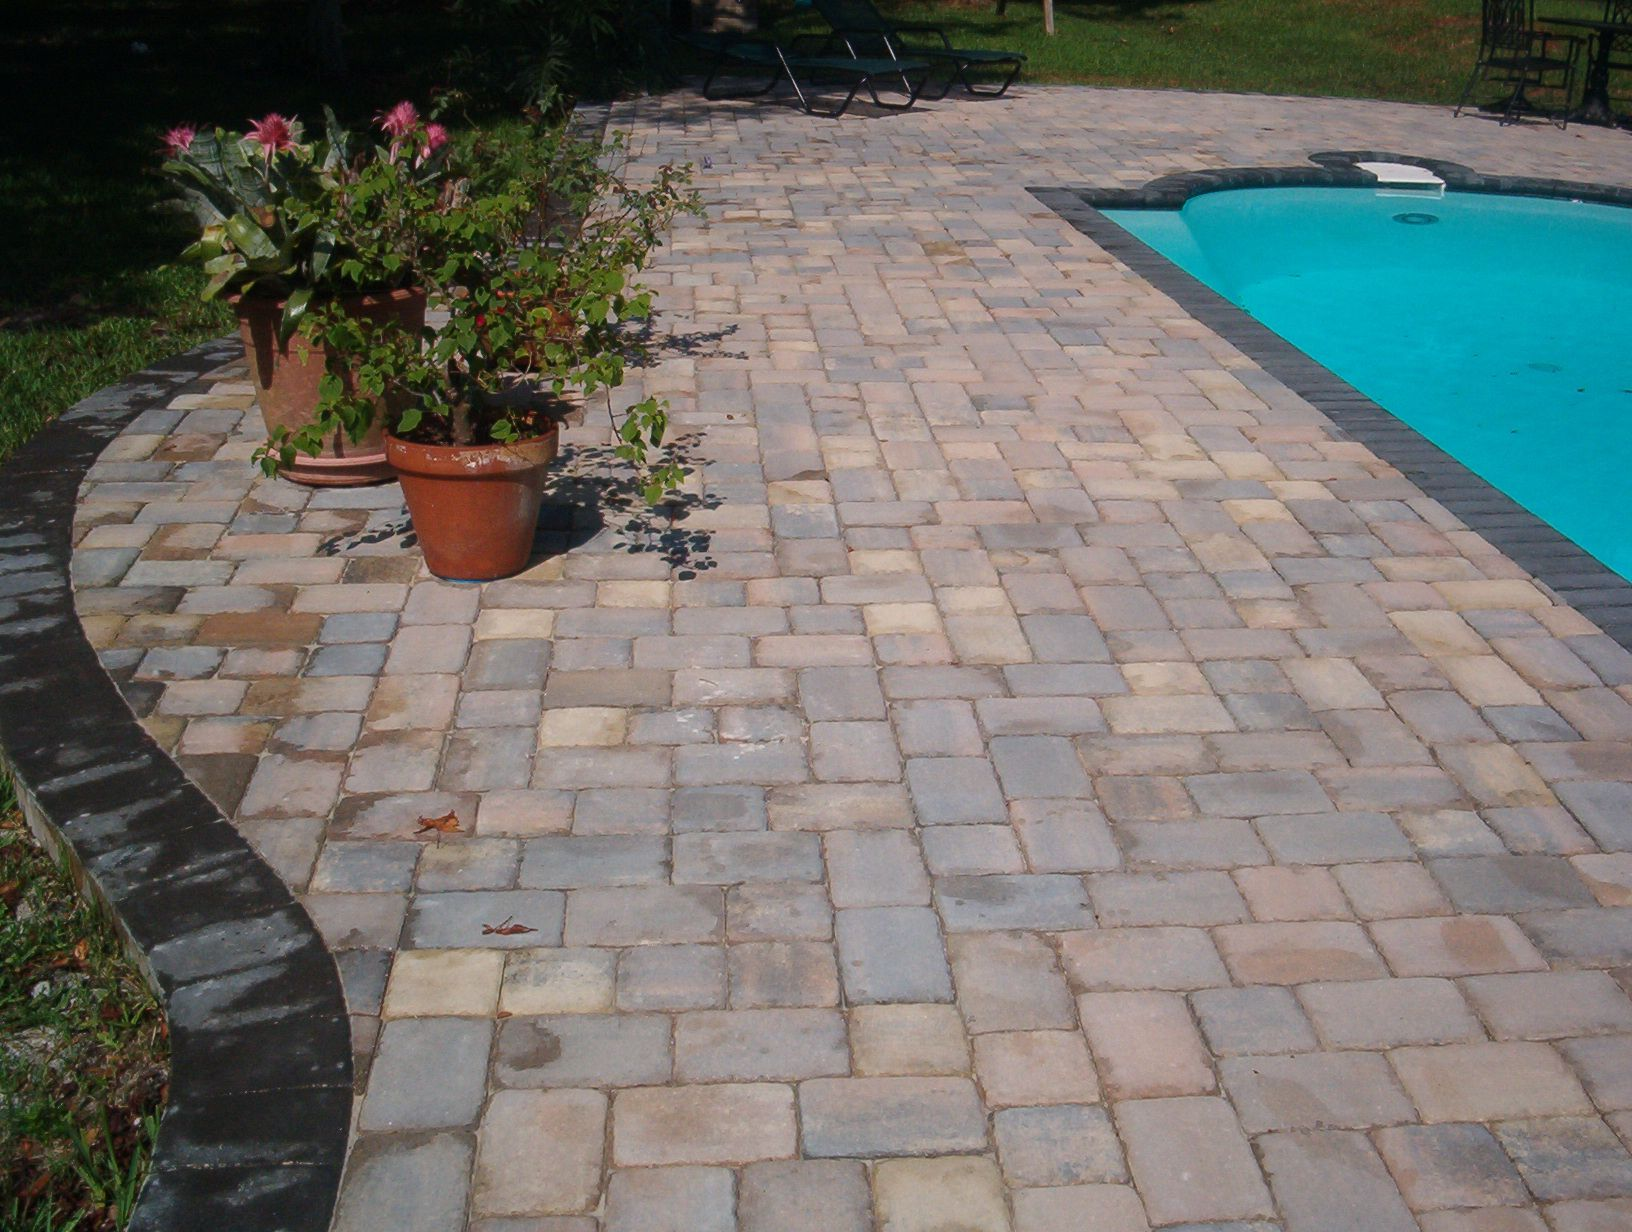 Custom old chicago pavers with charcoal border pool deck for Best pavers for pool deck